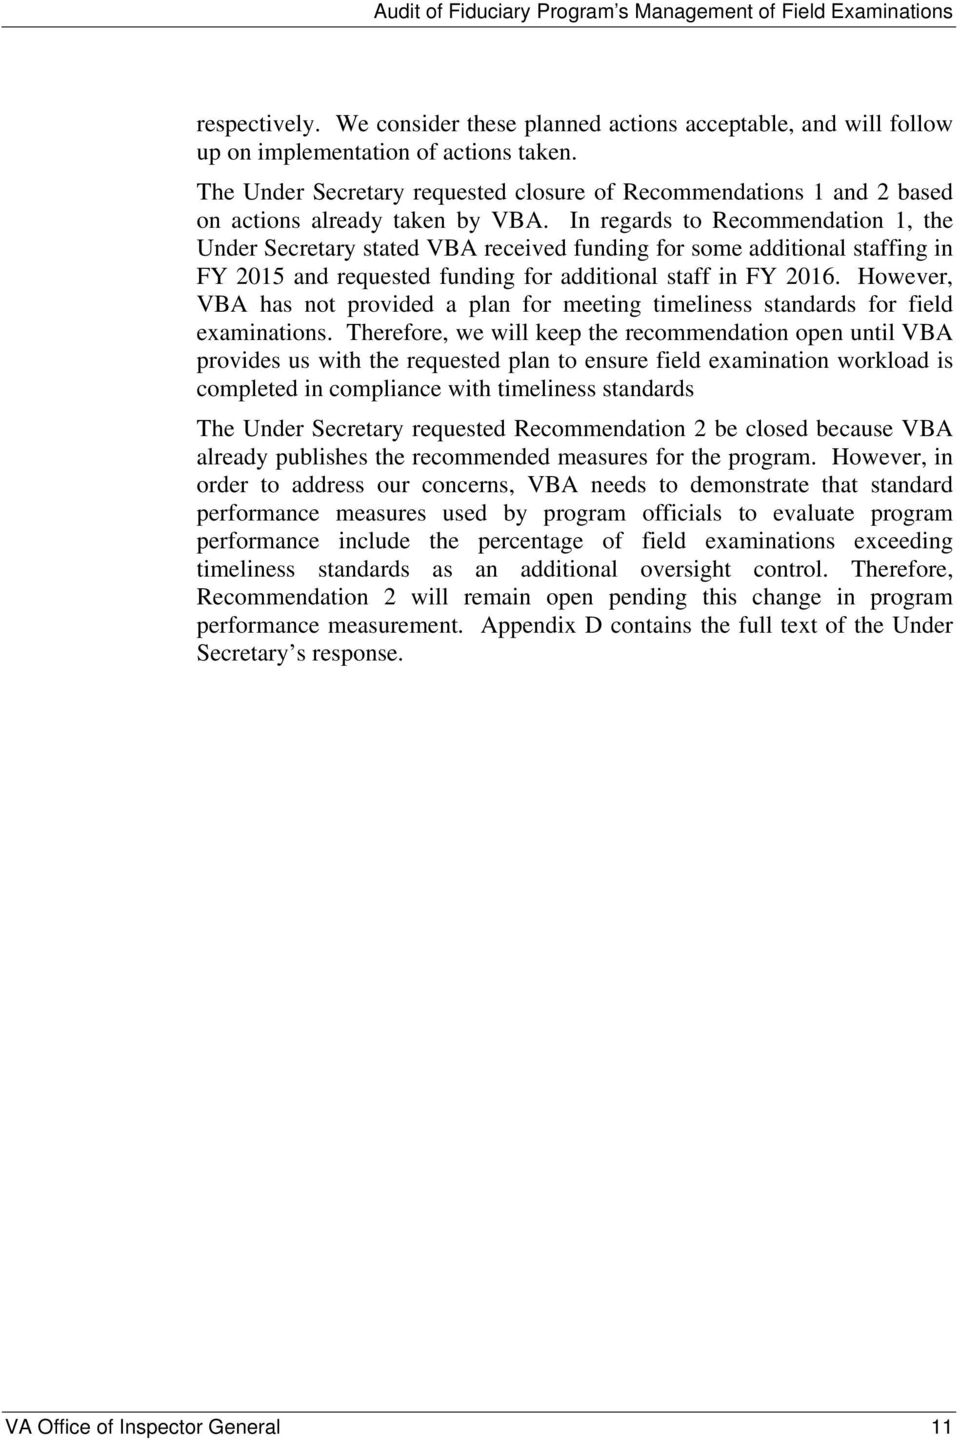 In regards to Recommendation 1, the Under Secretary stated VBA received funding for some additional staffing in FY 2015 and requested funding for additional staff in FY 2016.